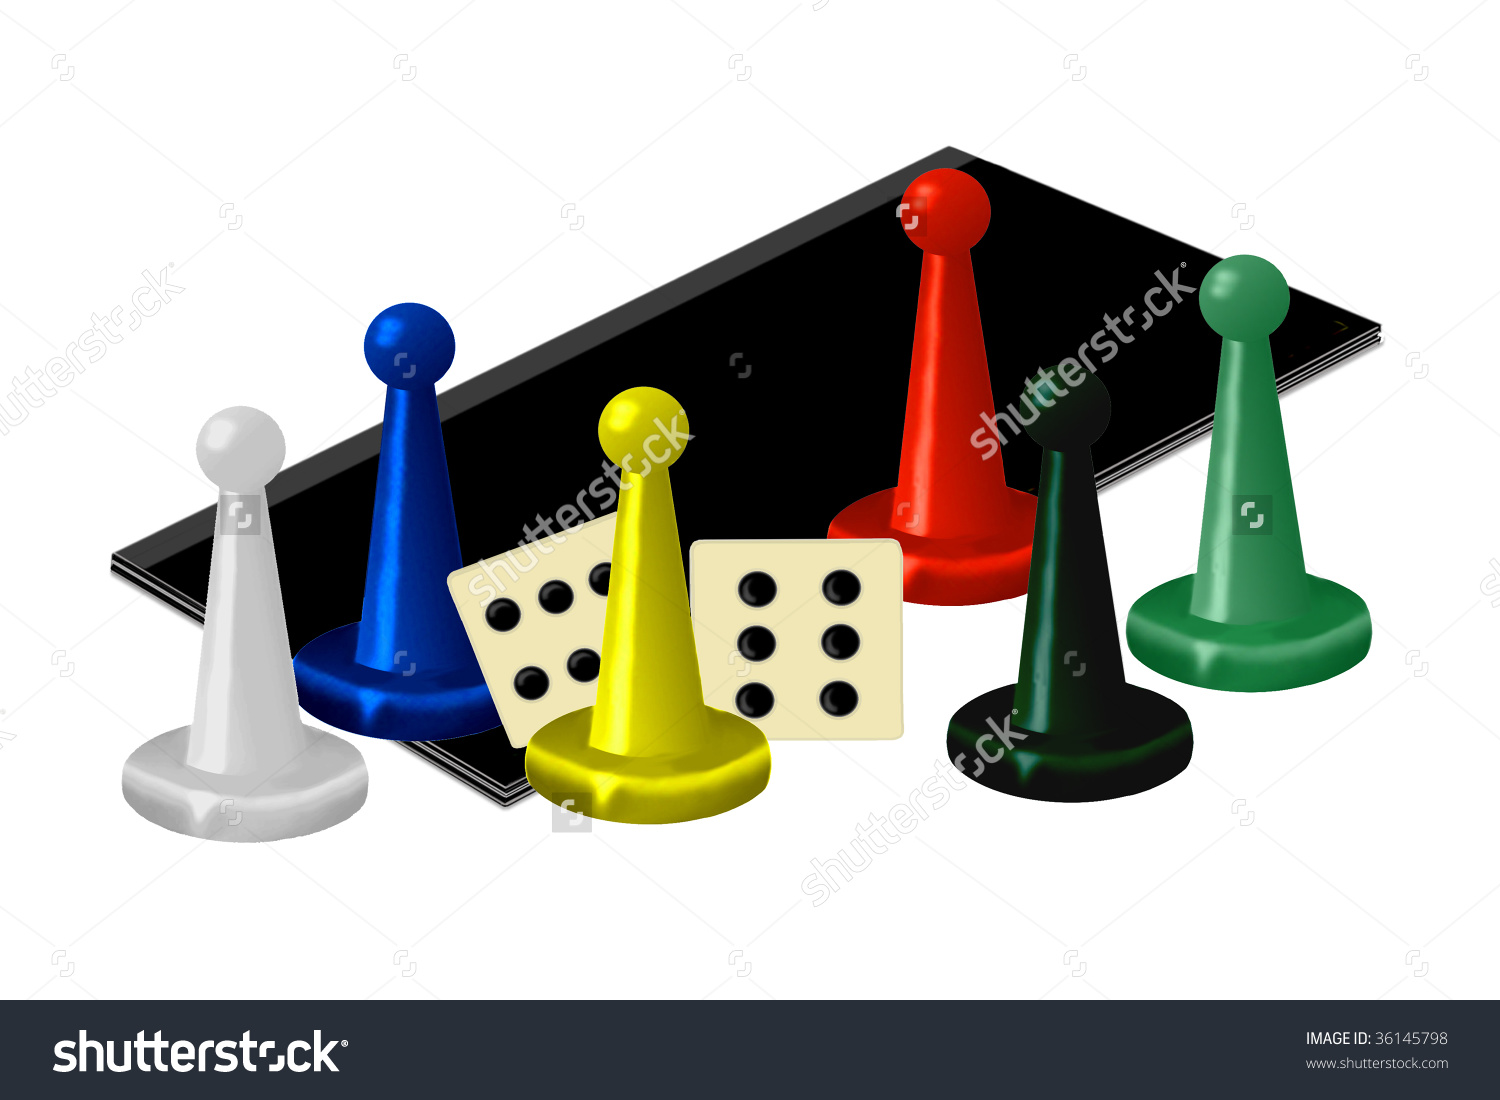 Family Game Night - Clipart of a game board, dice and brightly colored game pieces